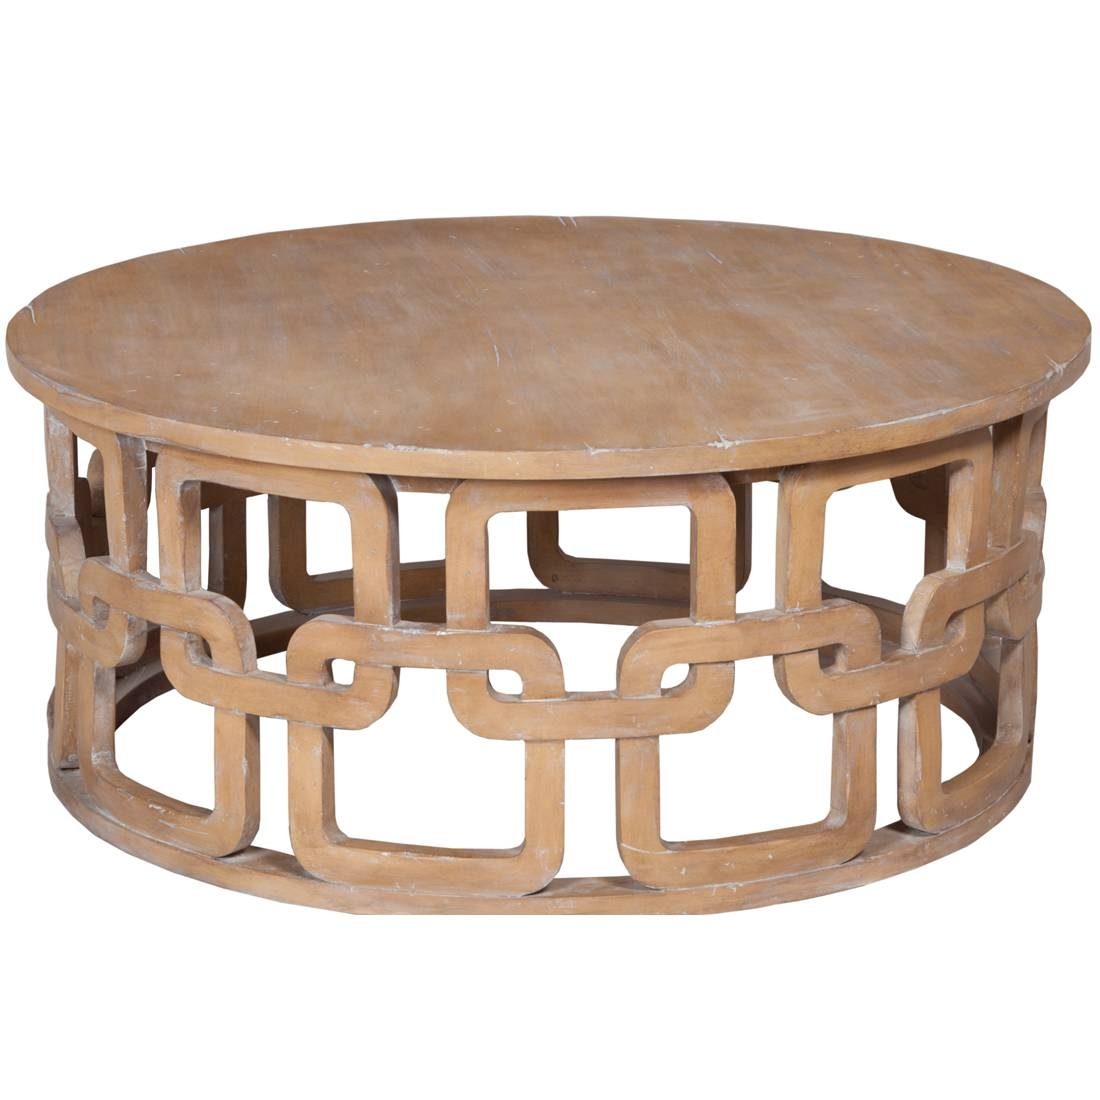 Gray Wash Round Coffee Table - Carved Pattern with regard to Grey Wash Wood Coffee Tables (Image 21 of 30)